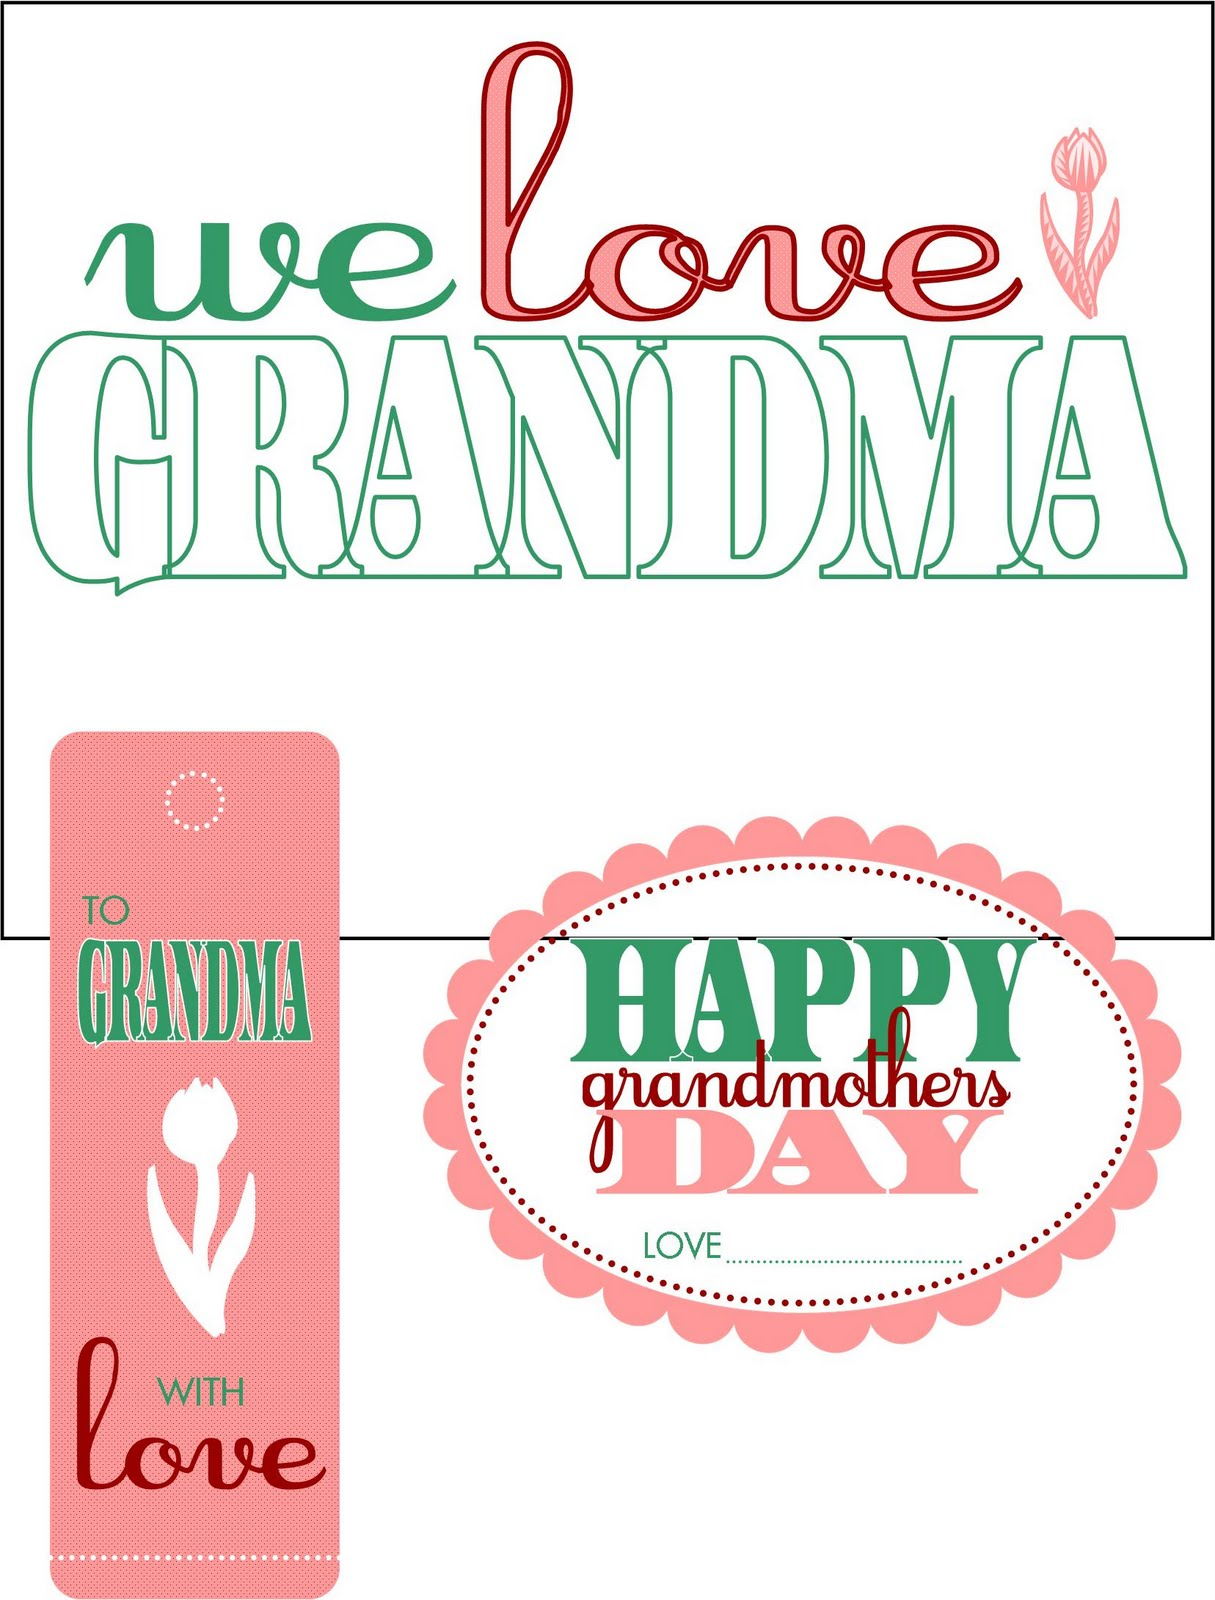 further  together with  further mothers day questionaire copy additionally grandfather worksheet 1 460 0 furthermore grandma and grandchild hug a7PZQP clipart likewise  as well  also Cute MotherS Day Coloring Pages Printable furthermore  in addition . on printable coloring pages for grandmothers